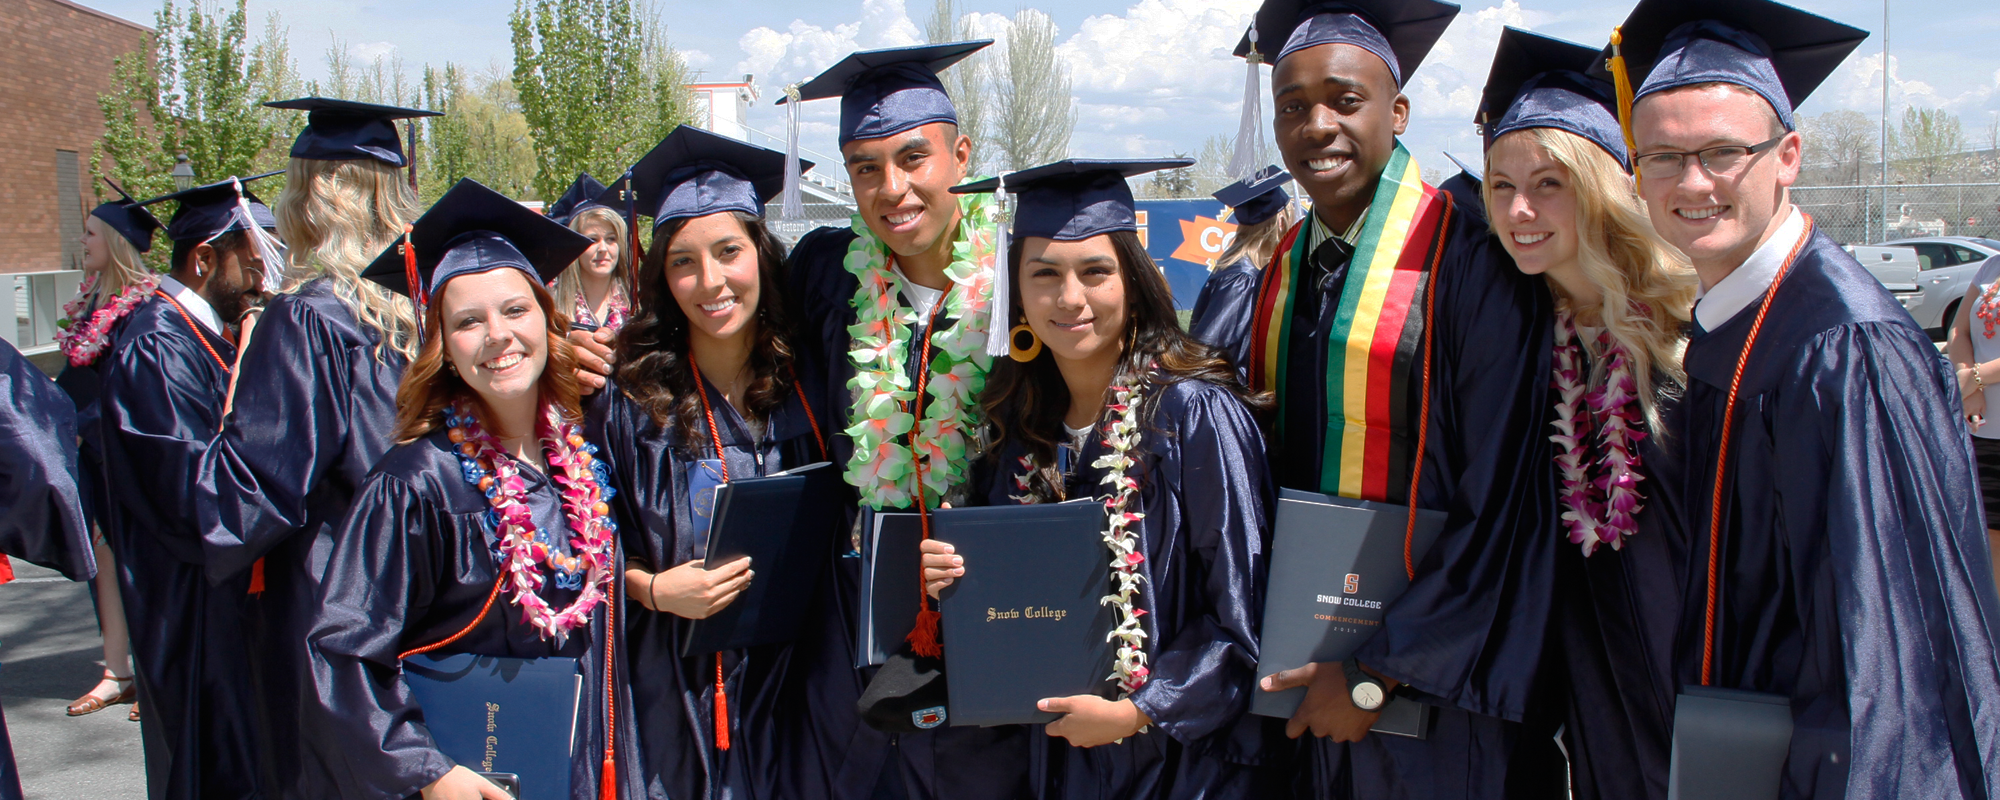 Snow College Graduates Record Number of Students